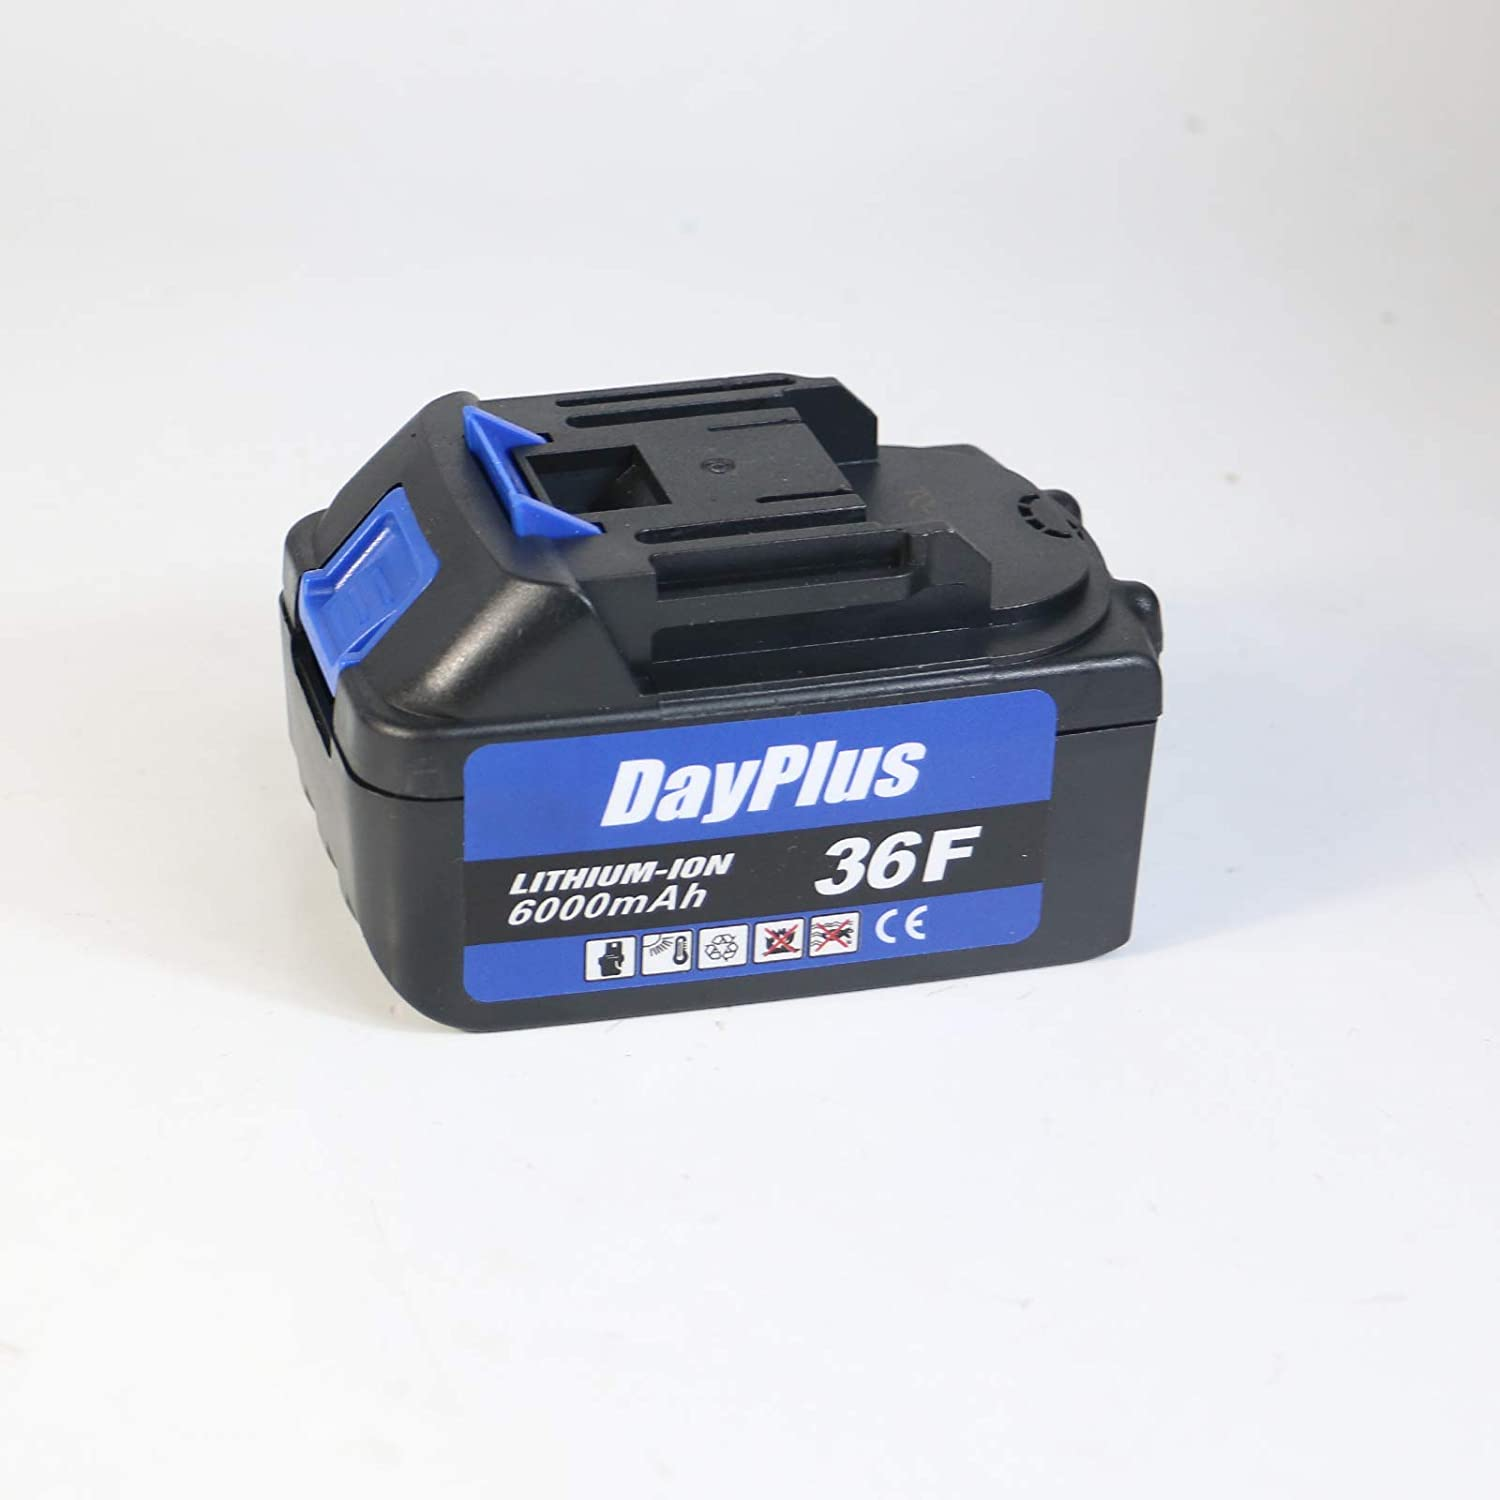 6000mAh Battery for Impact Wrench Max 60% OFF Lowest price challenge